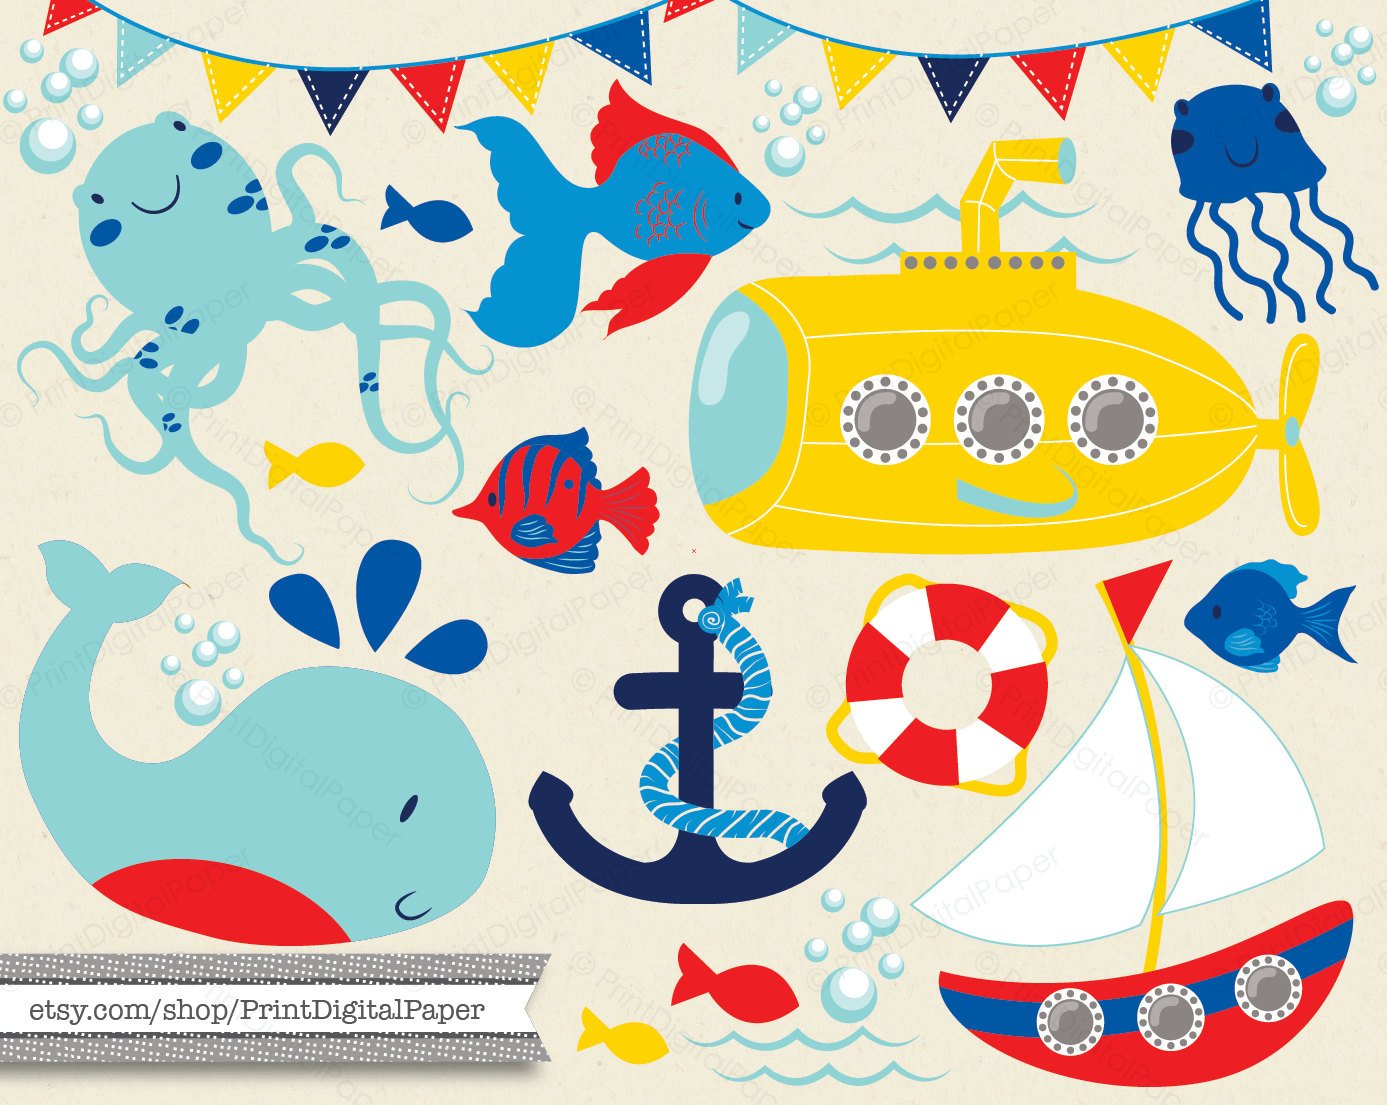 Anchor clipart underwater. Baby boy pencil and